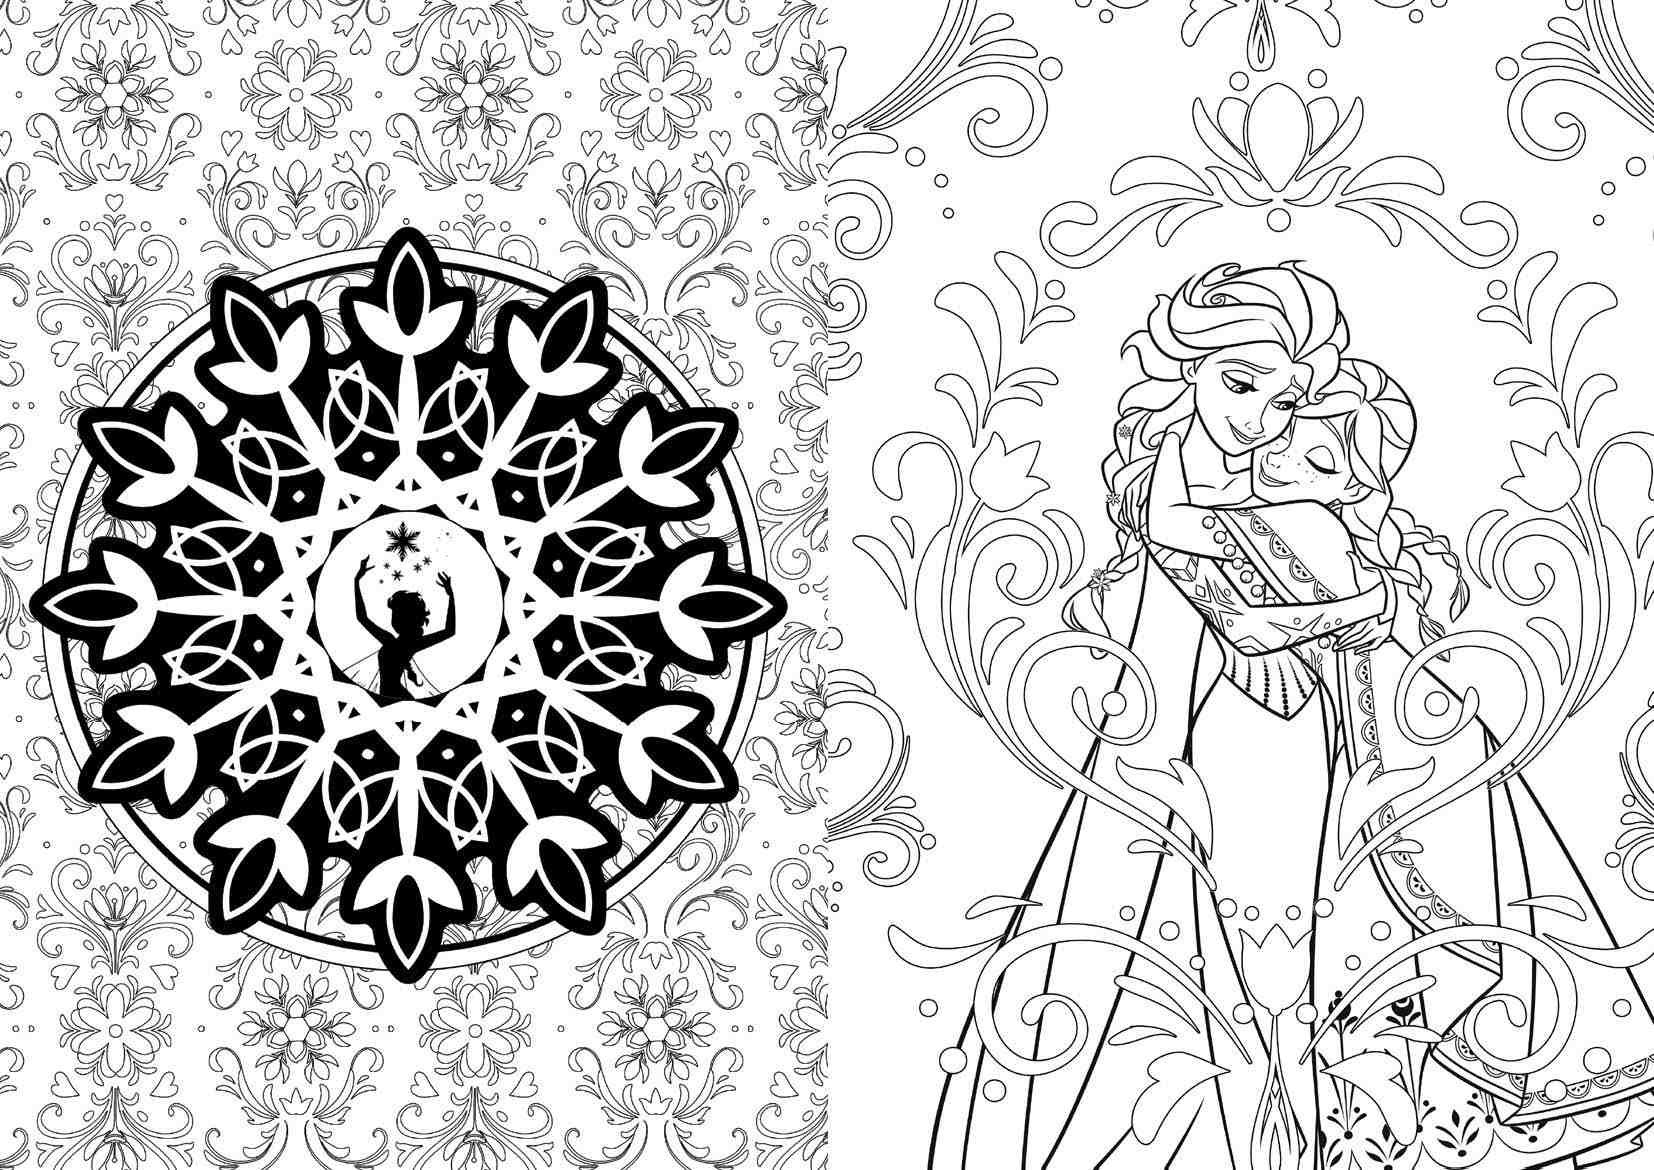 Art of Coloring Disney Frozen: 100 Images to Inspire Creativity ...